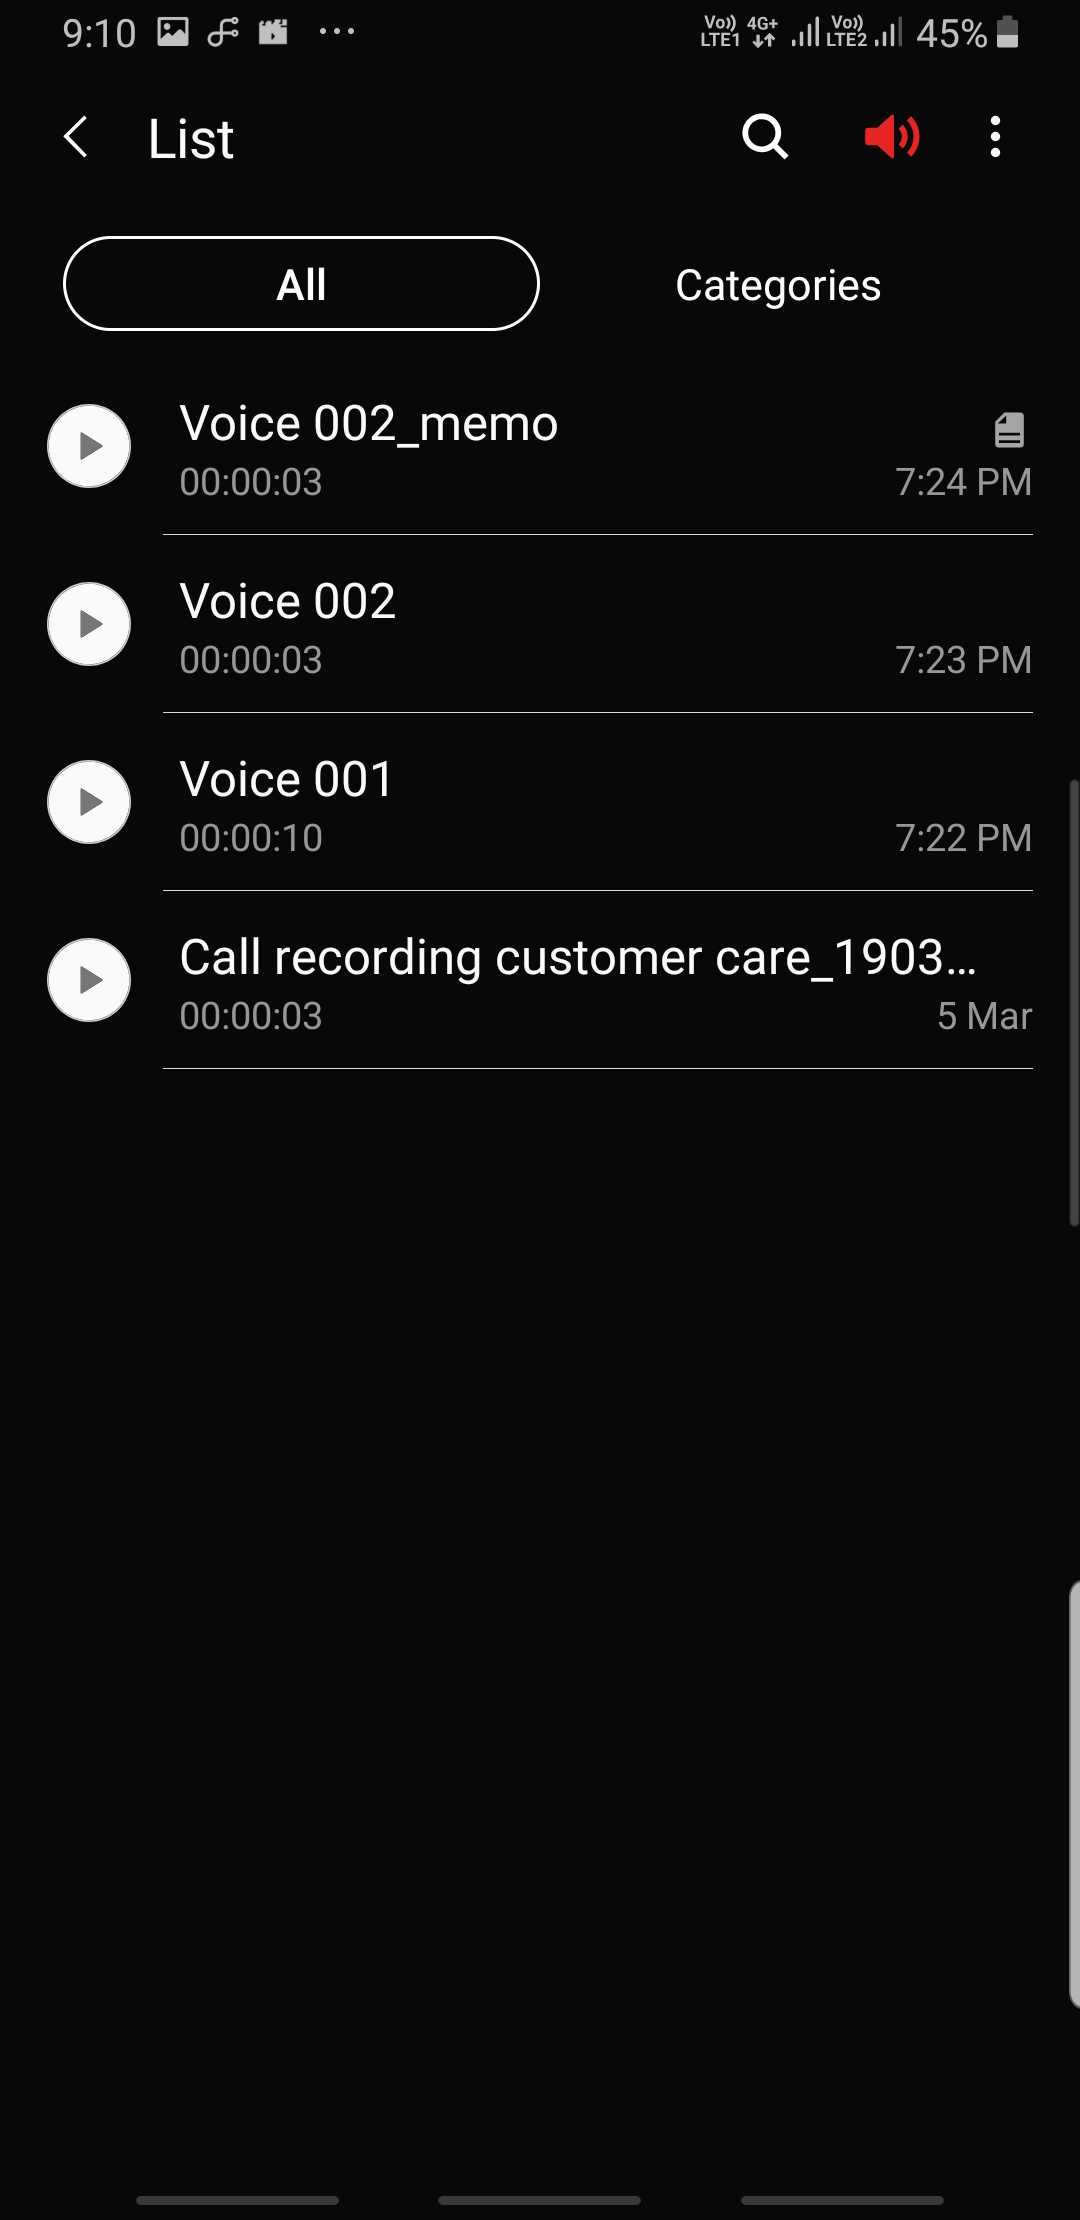 Samsung Voice Recorder app update brings Night mode and more - SamMobile